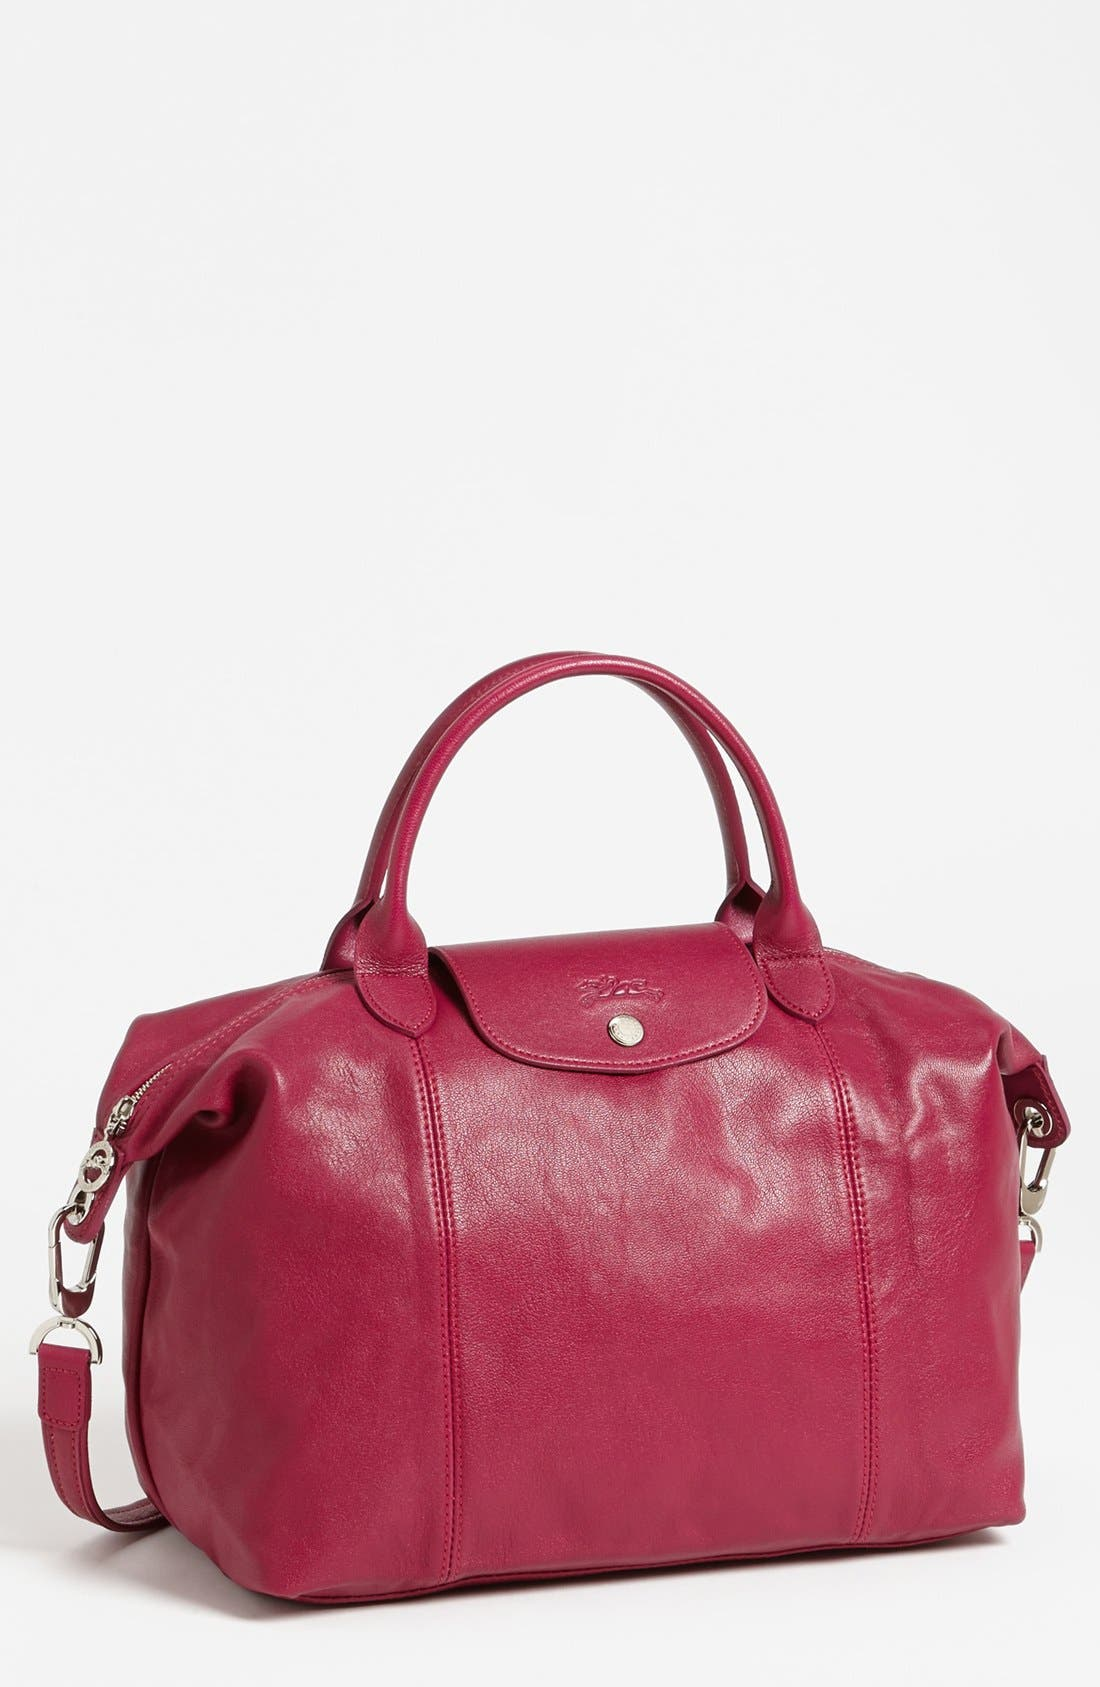 Medium 'Le Pliage Cuir' Leather Top Handle Tote,                             Main thumbnail 27, color,